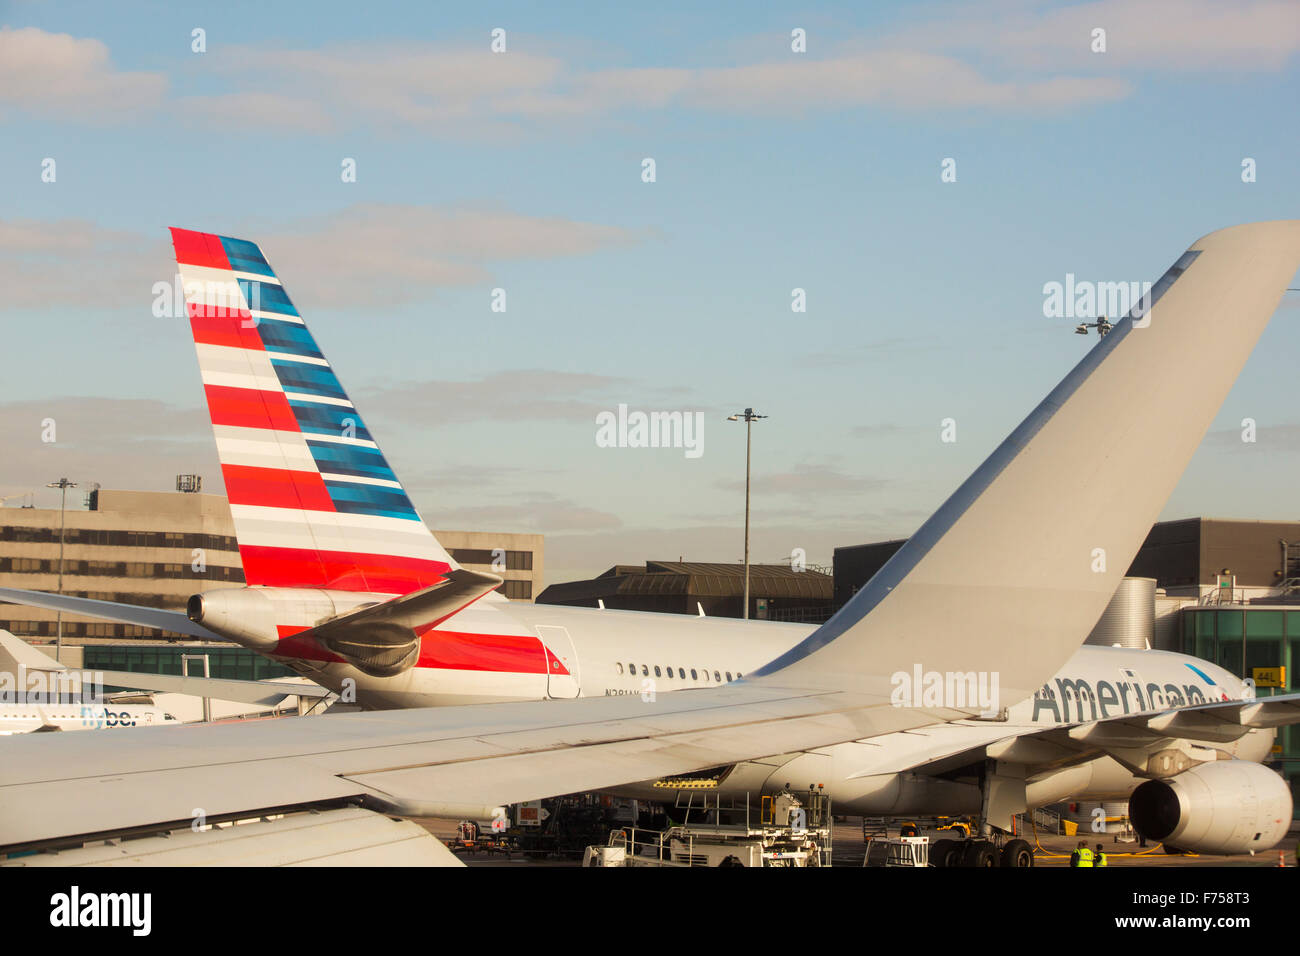 An American Airlines jet leaving Manchester airport, UK. - Stock Image